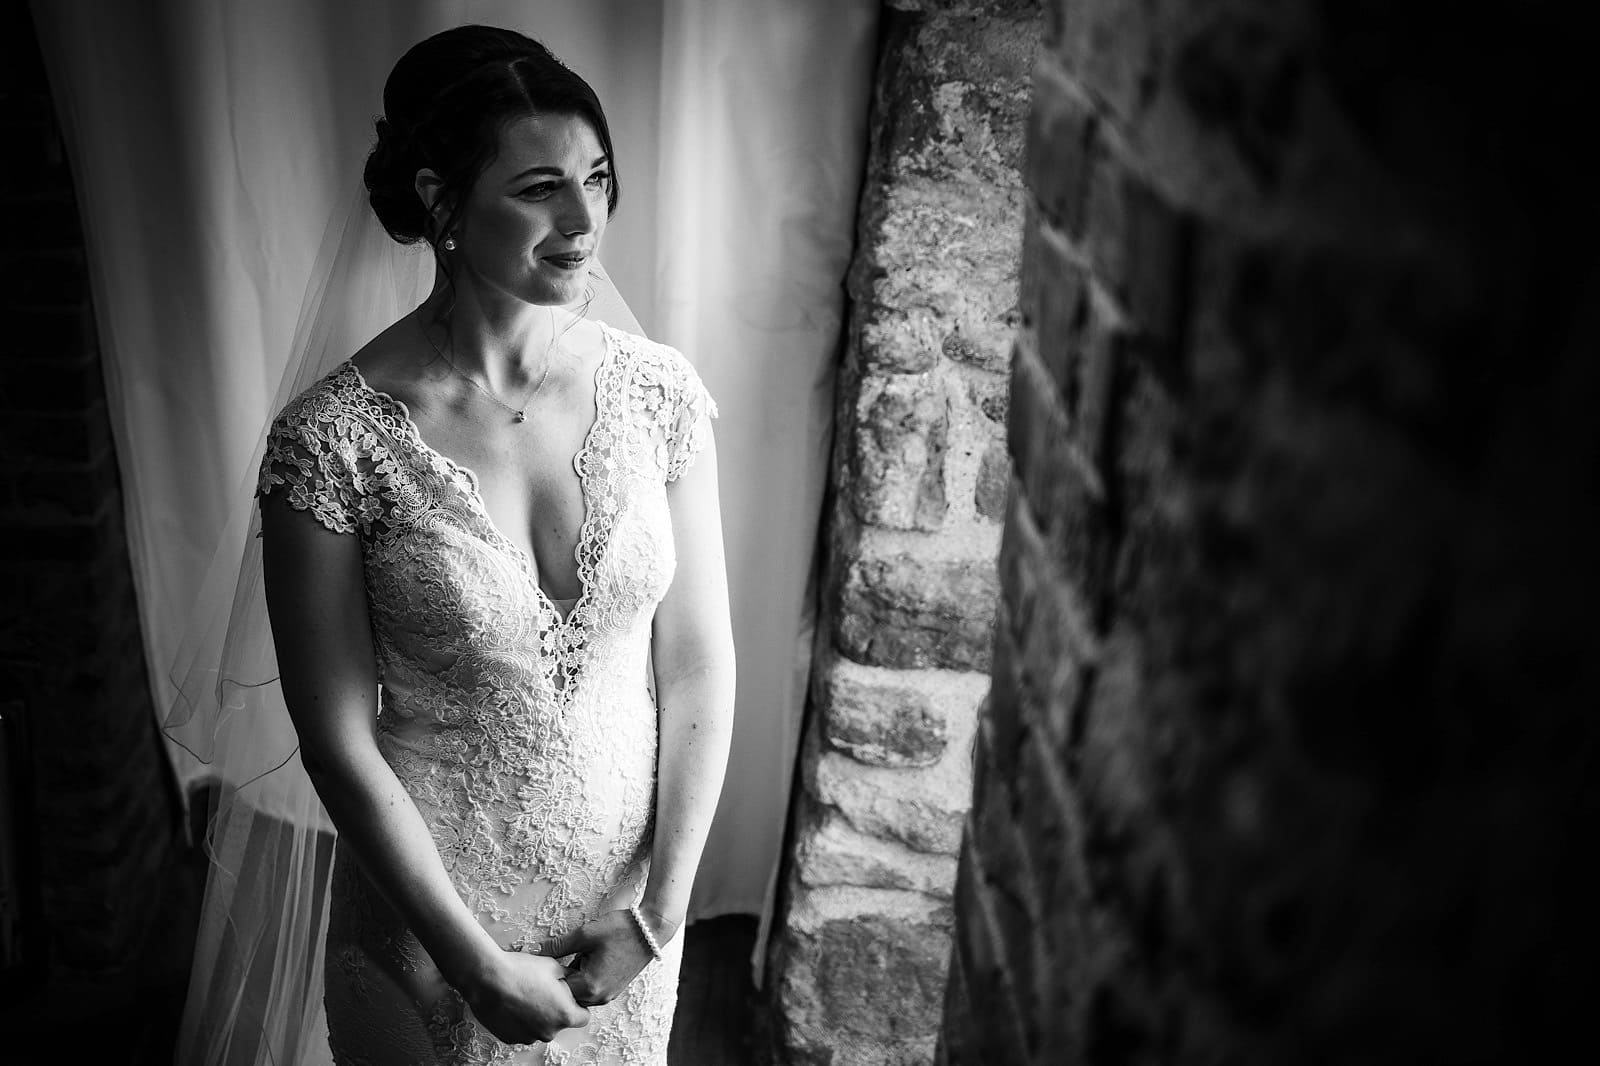 dodford manor northamptonshire wedding photography 0021